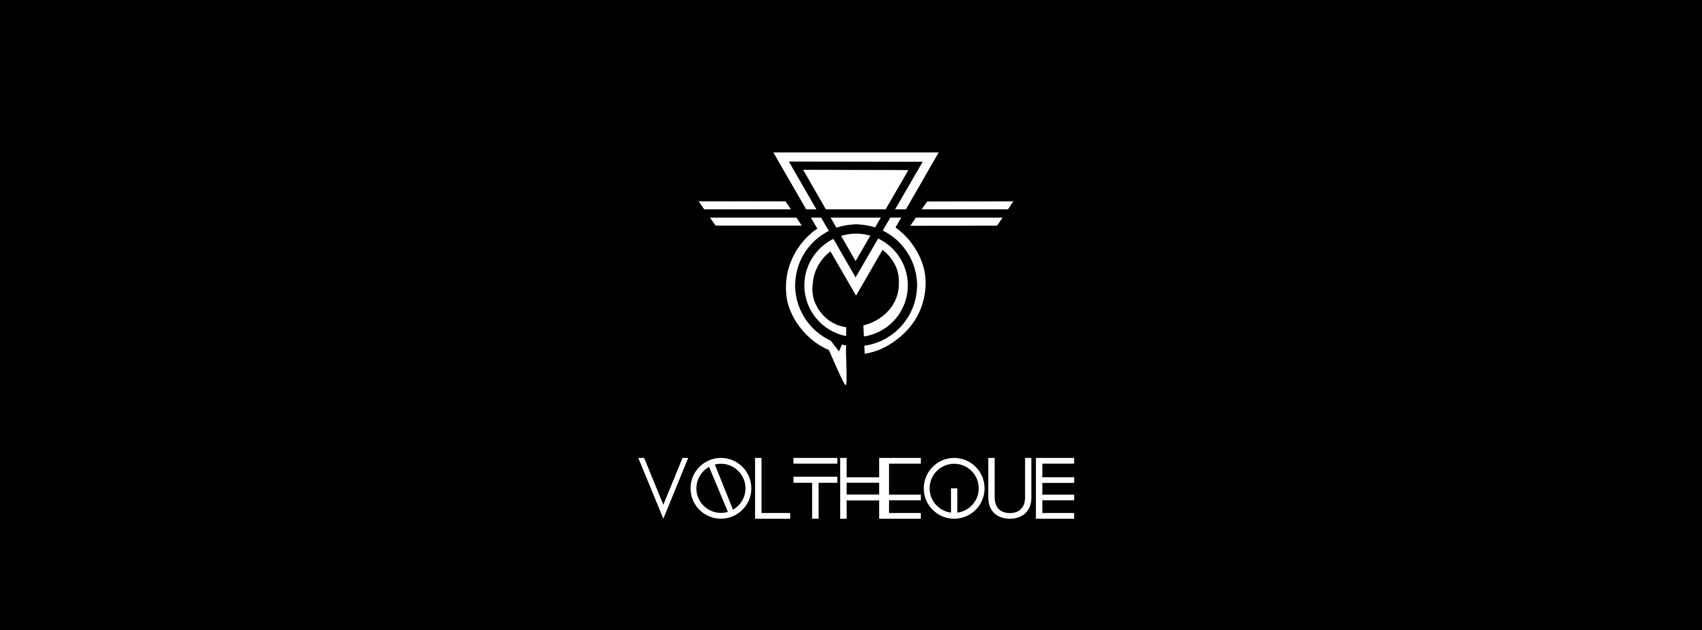 Voltheque